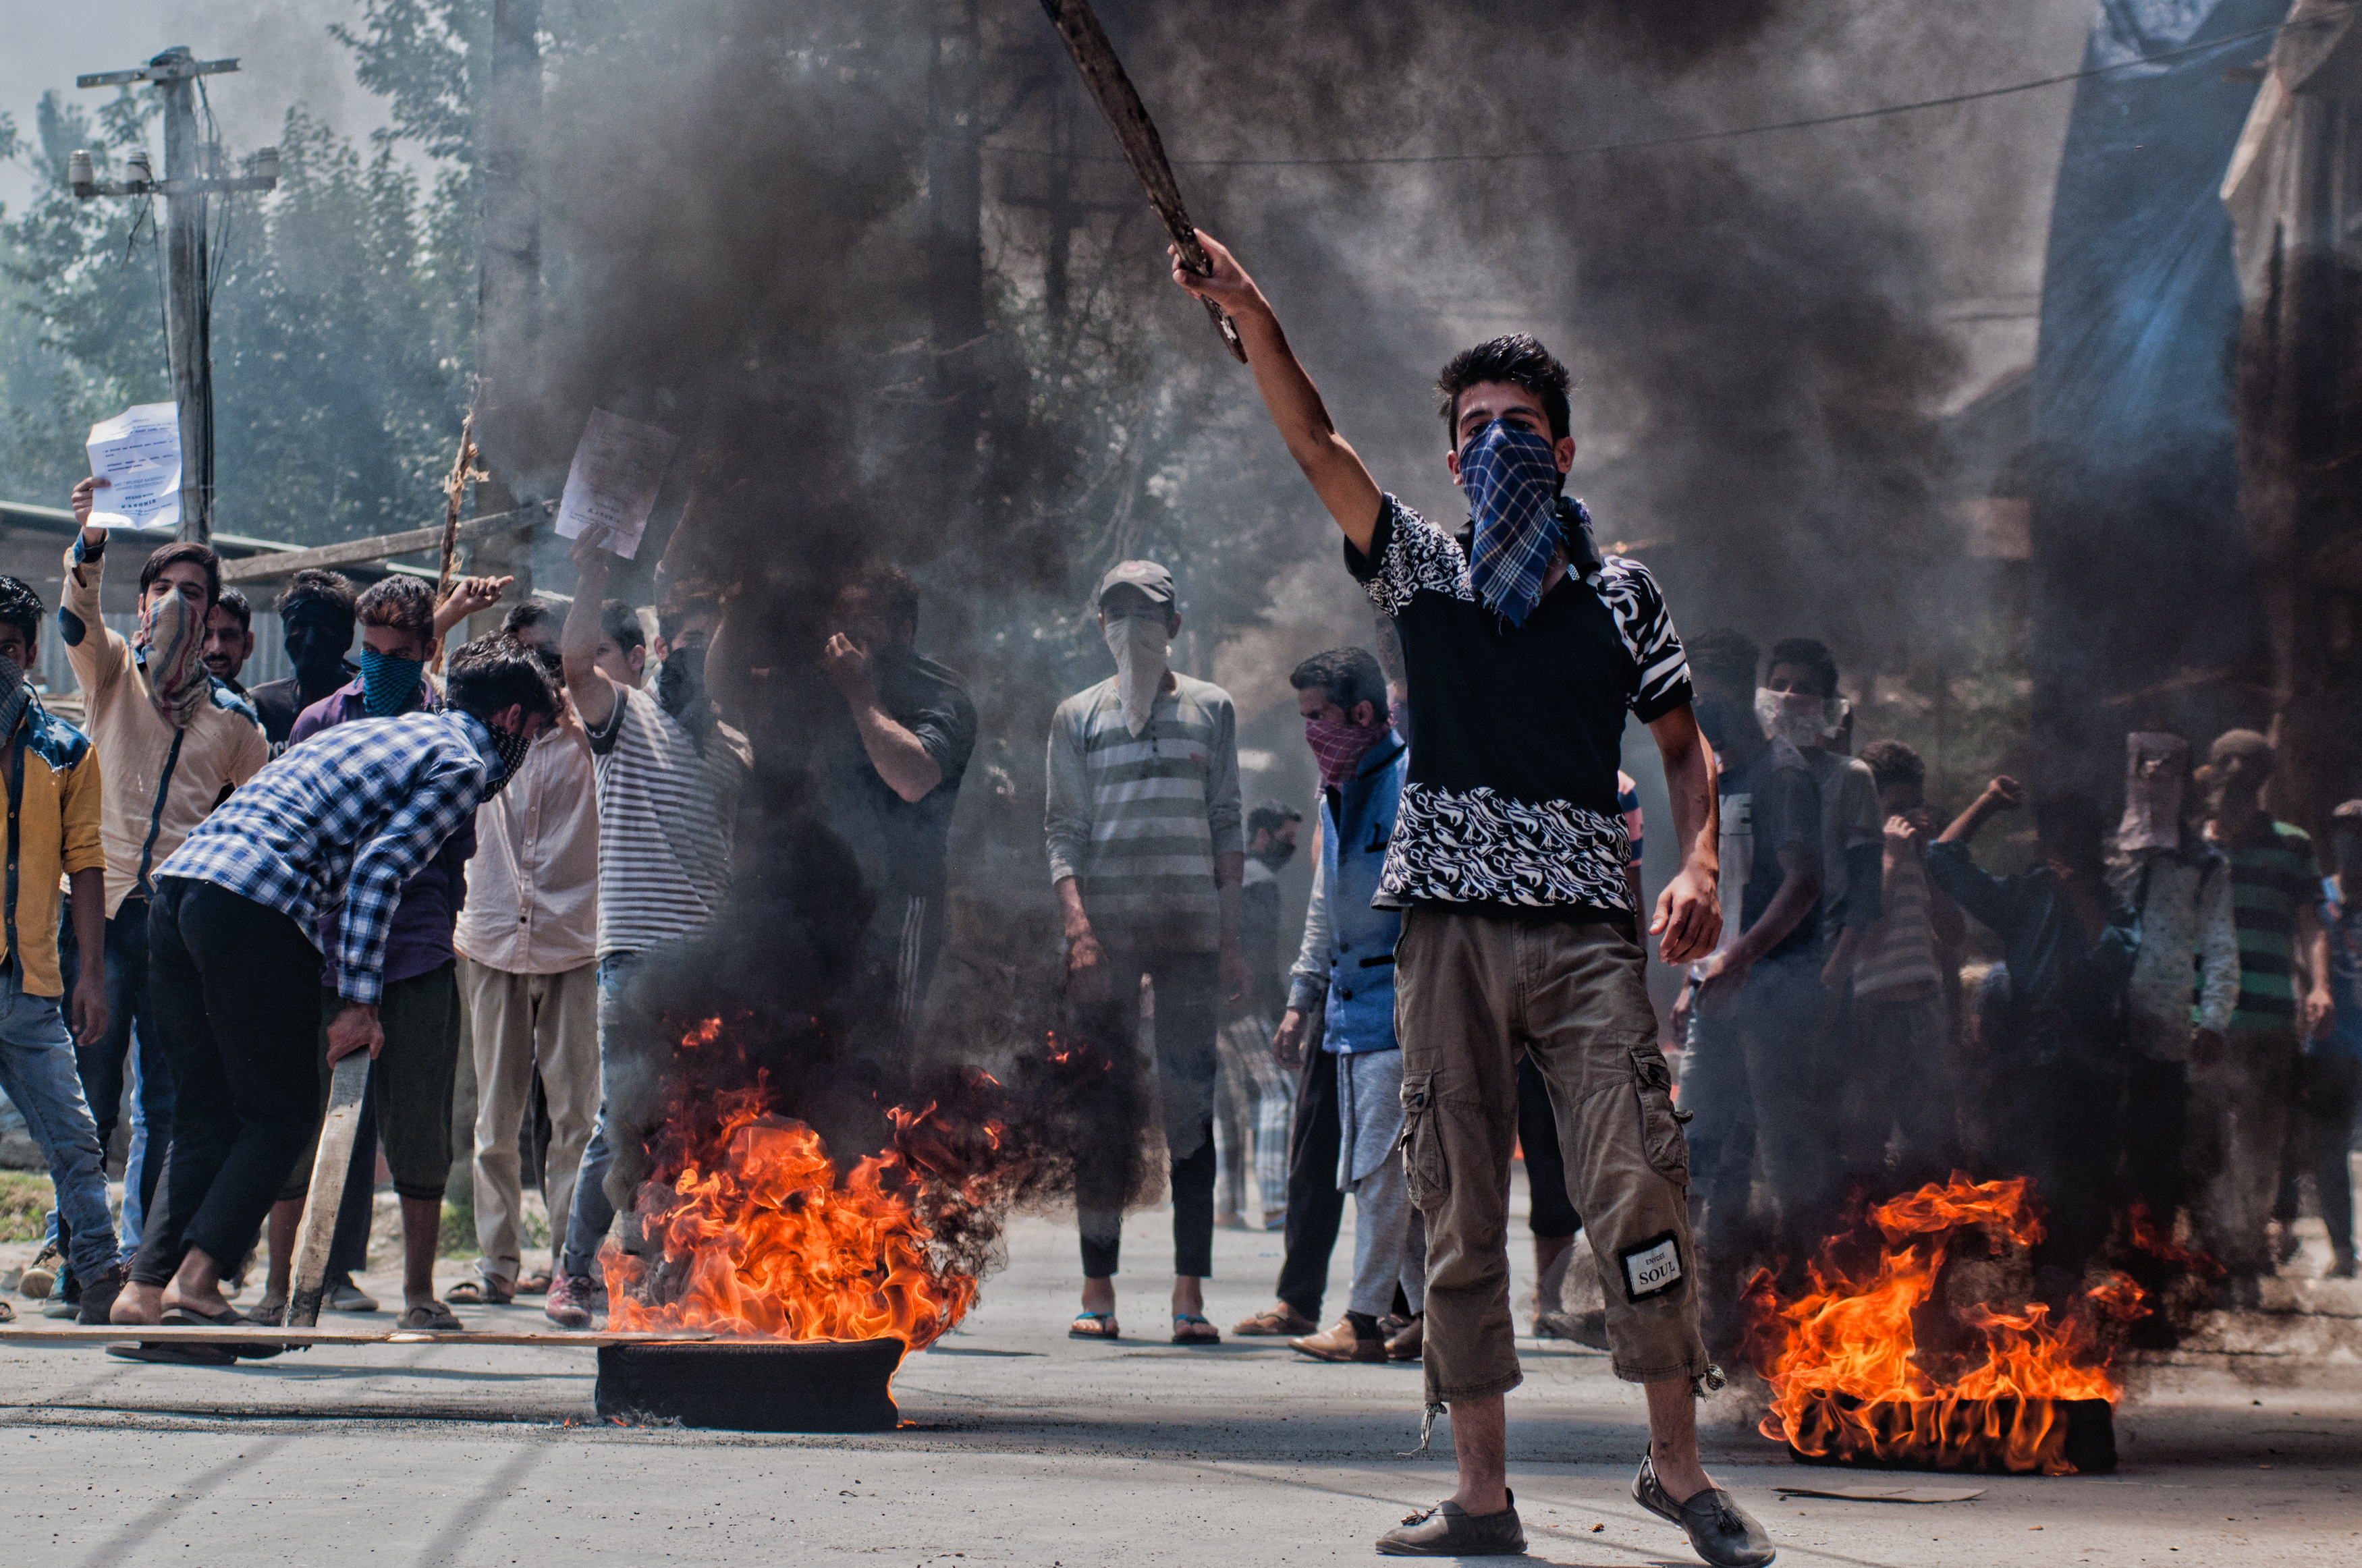 Kashmiri Muslim protesters shout anti Indian slogans  during a protest, following violence on July 23, 2016 in Srinagar, the summer capital of Indian administered Kashmir, India.